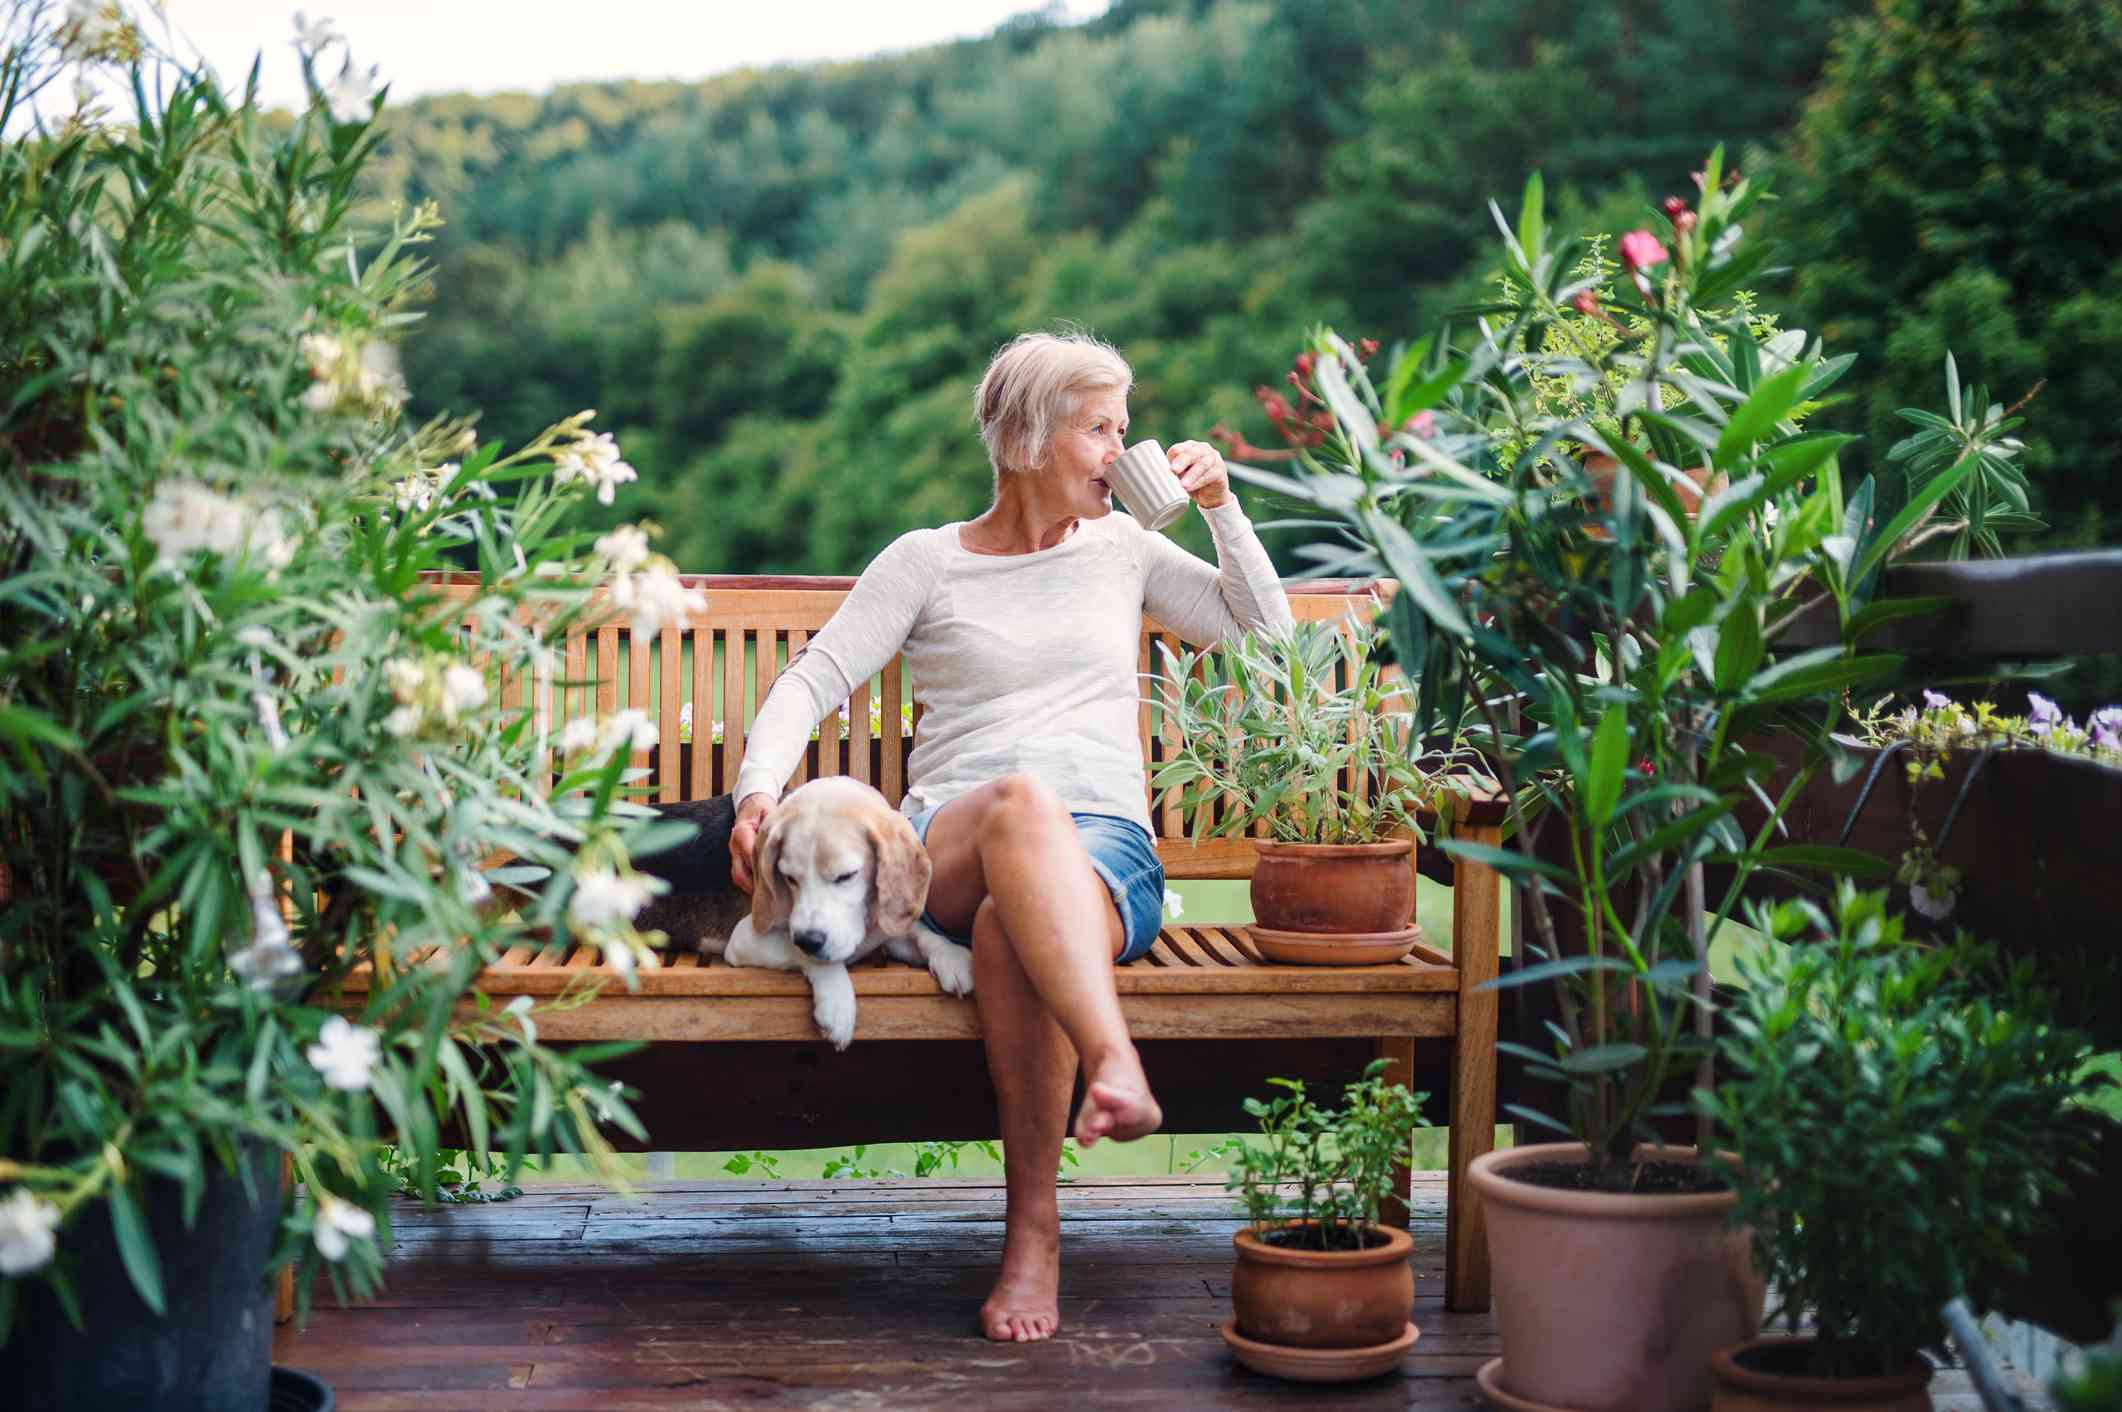 woman relaxes in nature with dog